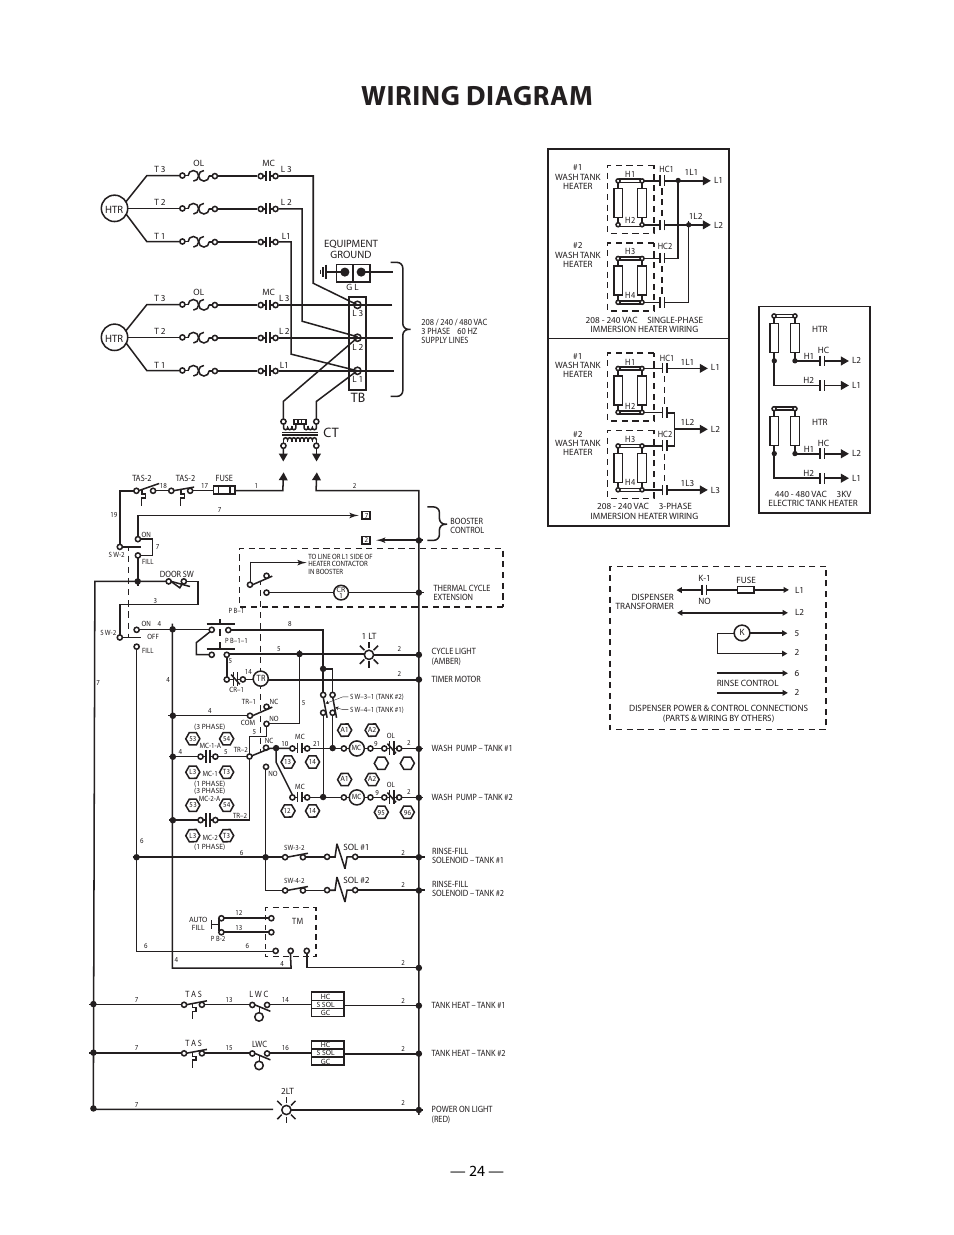 wiring diagram model mc1a wiring library High Voltage Wiring Diagram wiring diagram ct tb blakeslee dd 8 user manual page 24 28